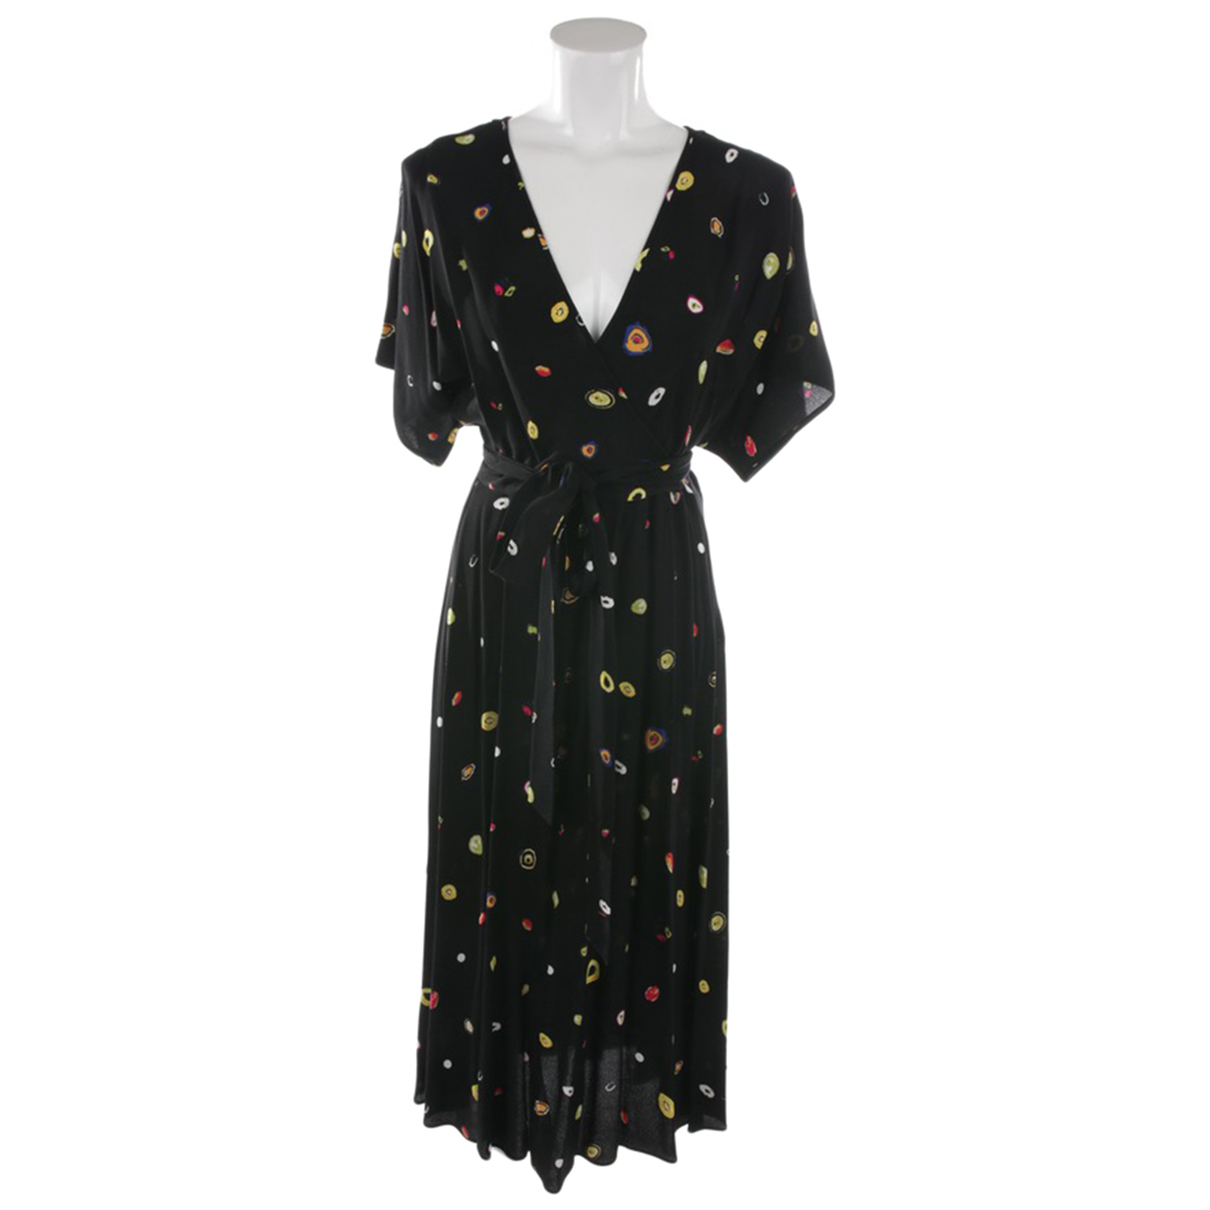 Diane Von Furstenberg N Black dress for Women 38 IT